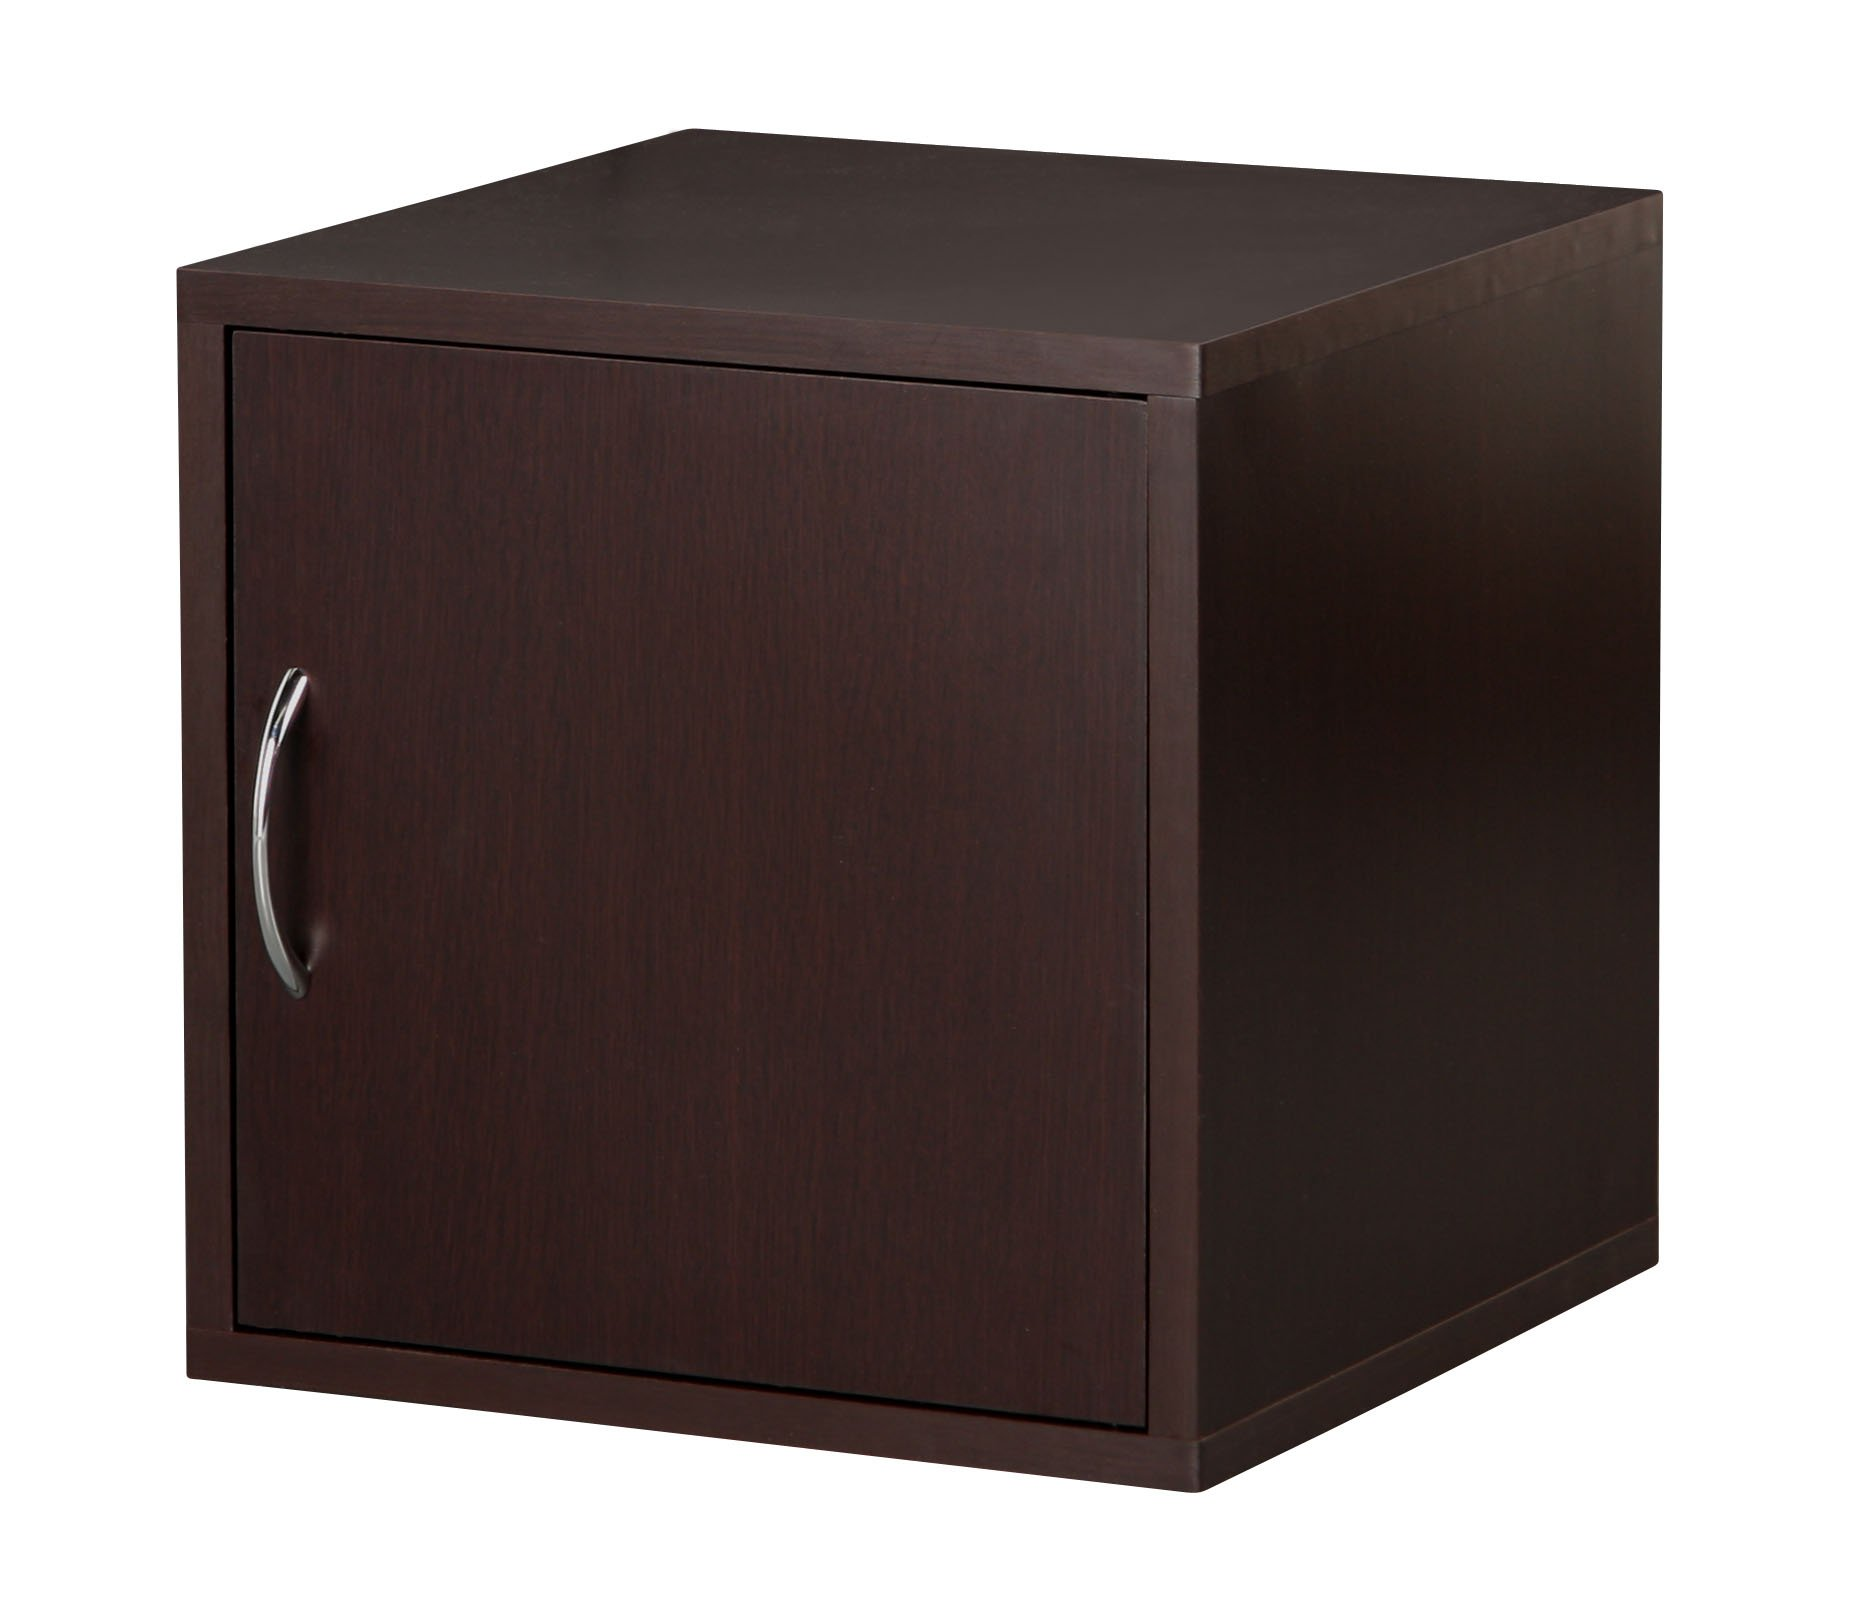 Foremost 327509 Modular Door Cube Storage System, Espresso